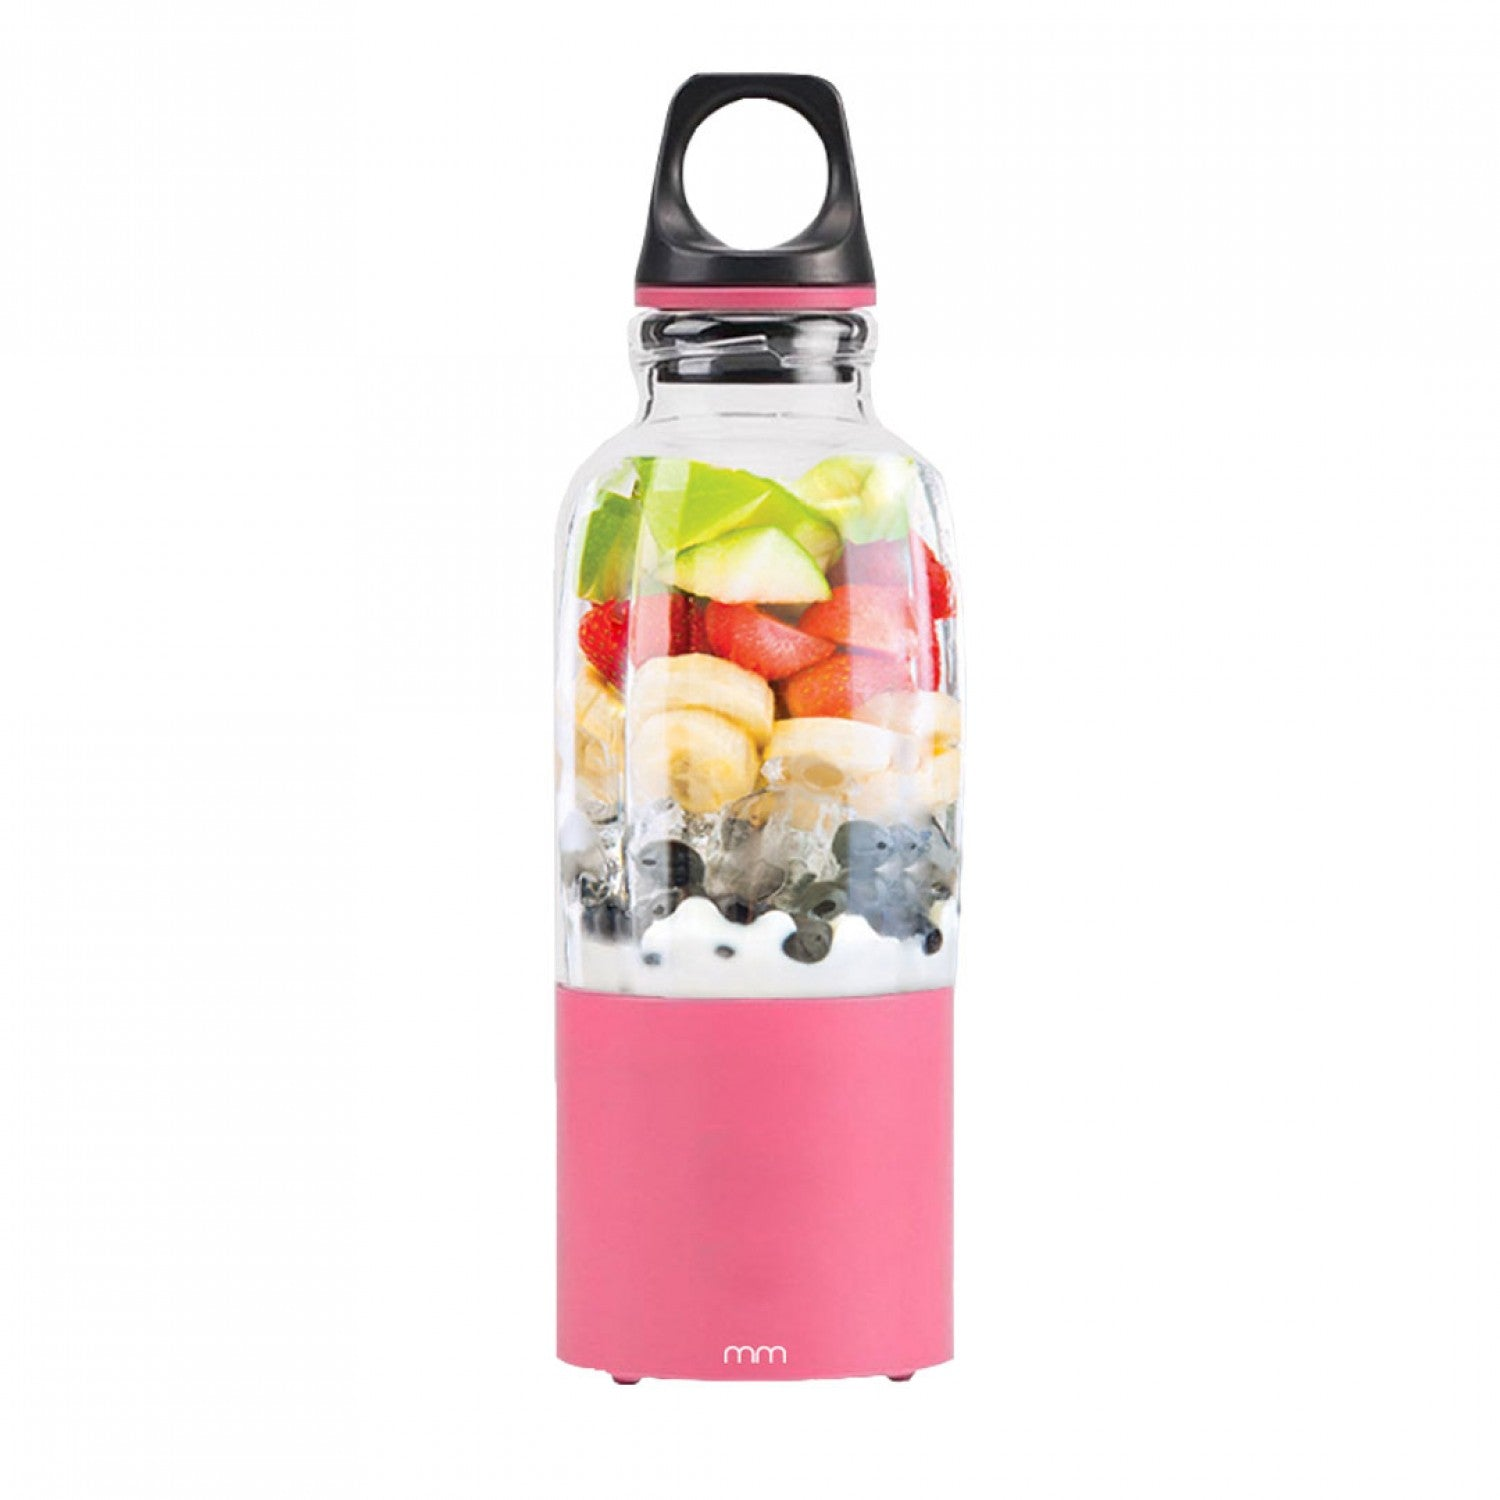 Blender portabil-Brend it to go-Pink - Adda Gifts